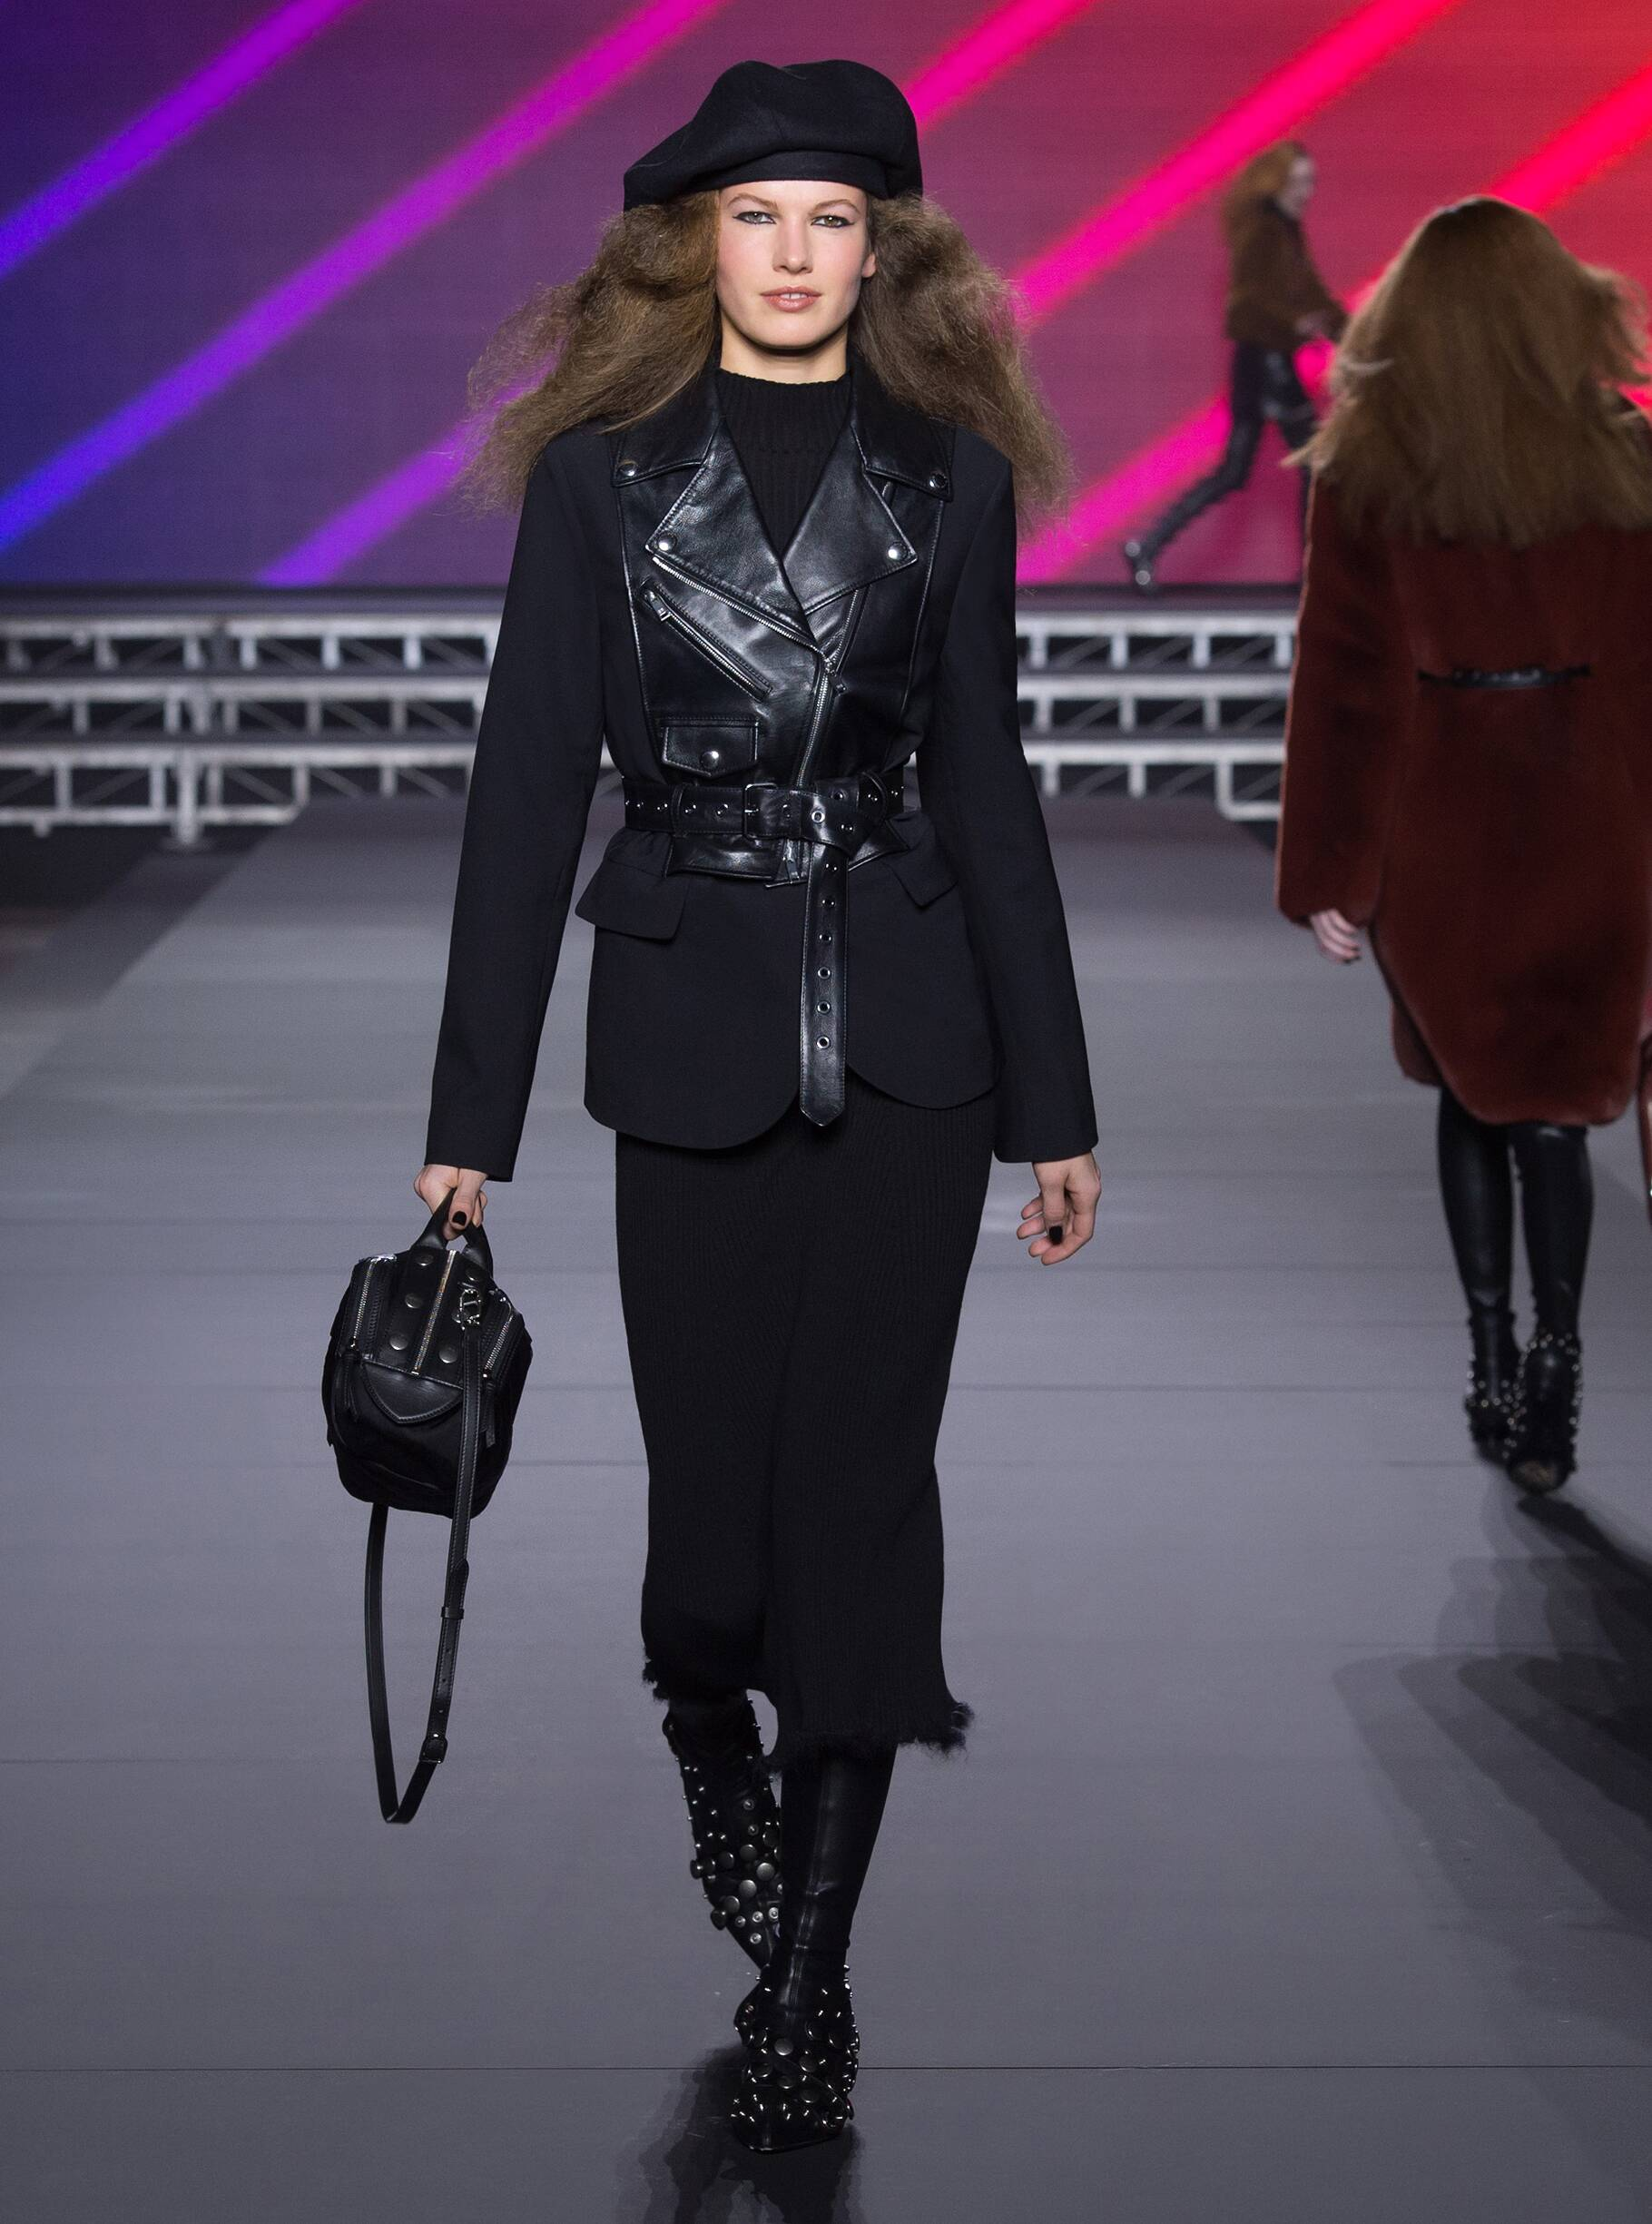 Woman FW 2018-19 Fashion Show Sonia Rykiel